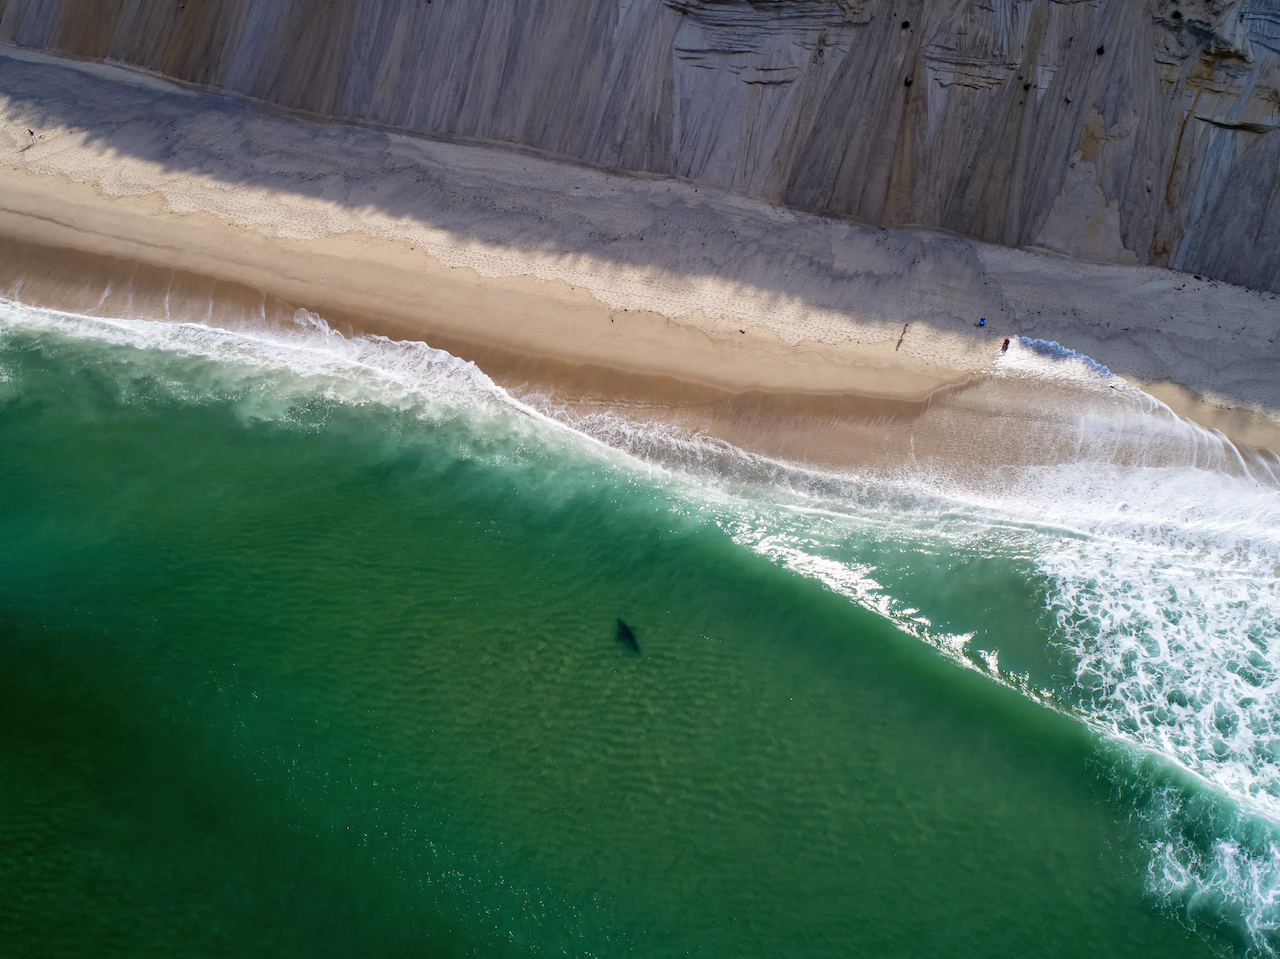 Update: Cape Cod's Great White Shark Situation - Surfline